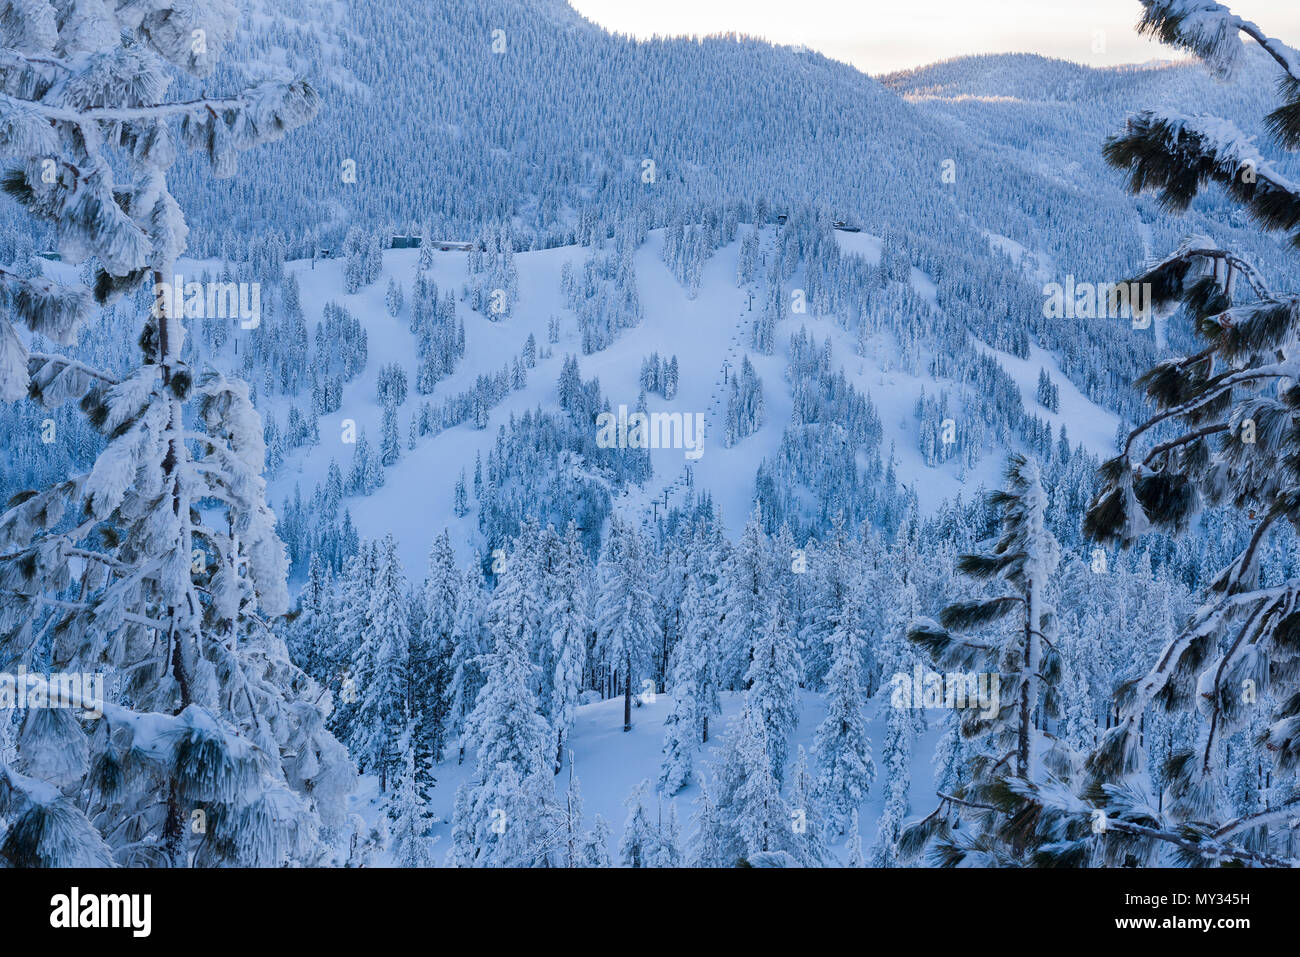 Diamond Peak as seen from Mt. Rose Highway after recent snowfall. Stock Photo